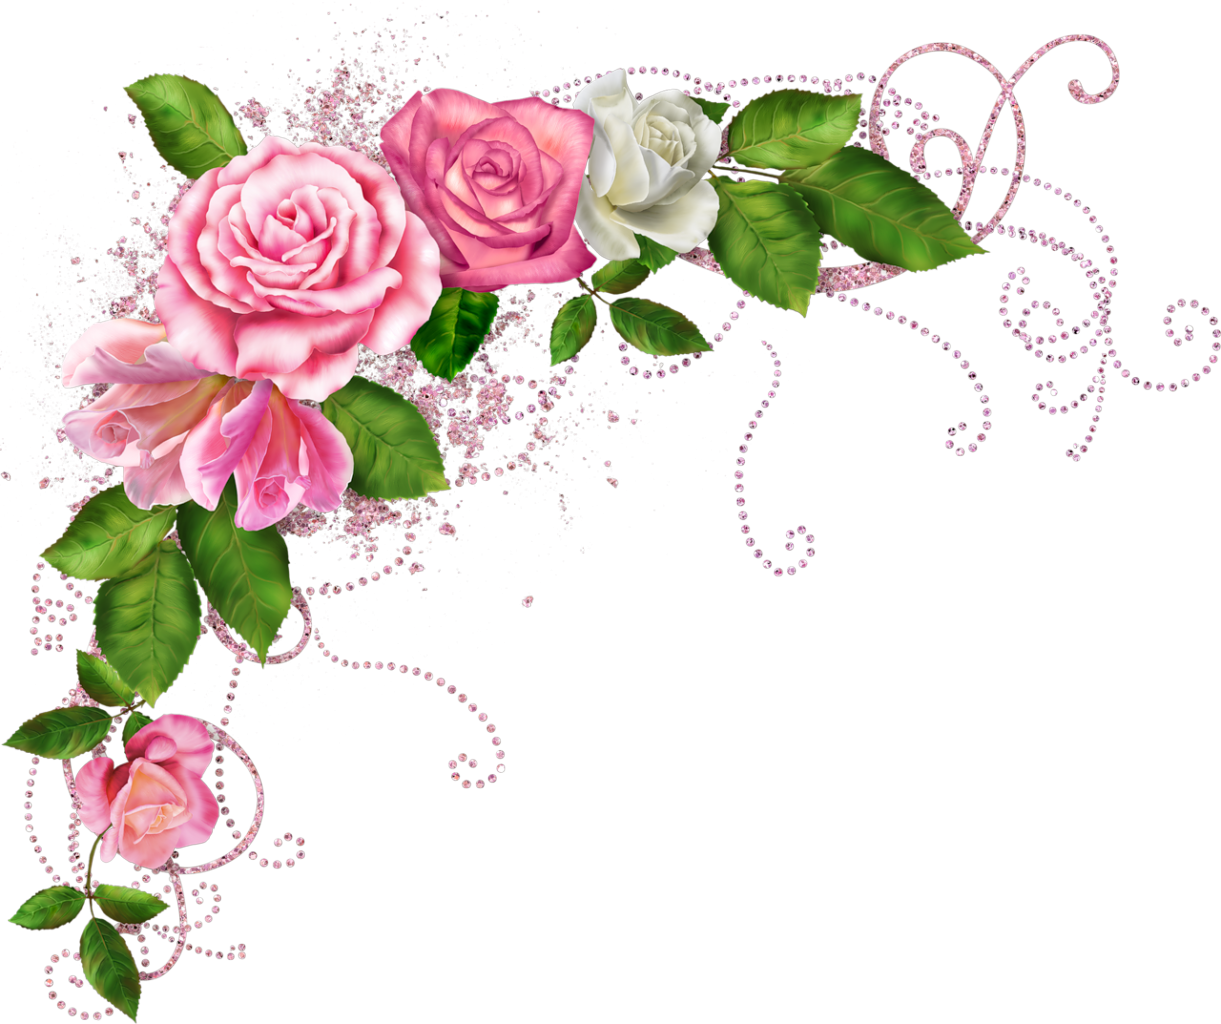 Www Playcast Ru Uploads 2014 08 01 9392656 Png Gifts For An Artist Floral Border Page Borders Design